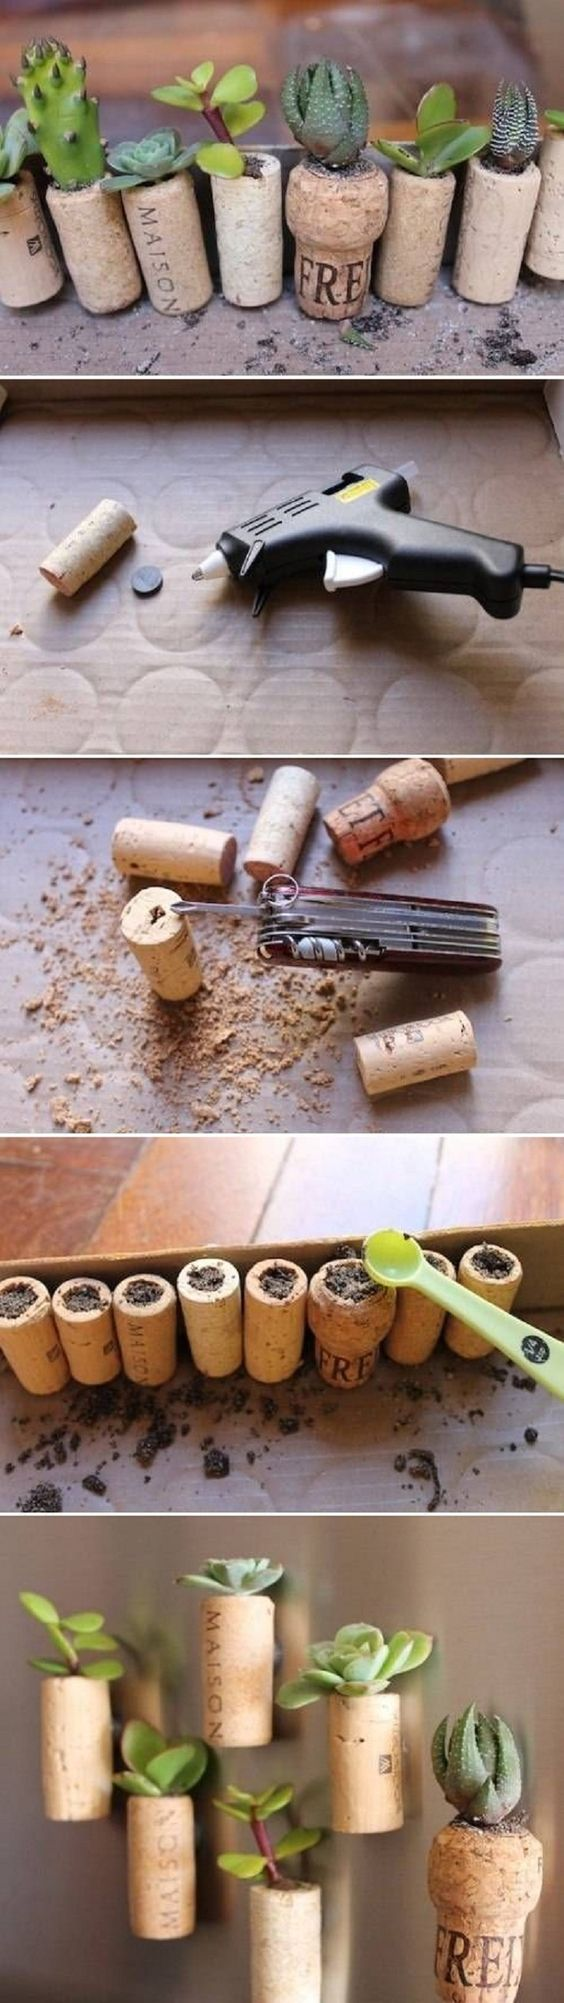 7 Inventive DIY Wine Cork Crafts: